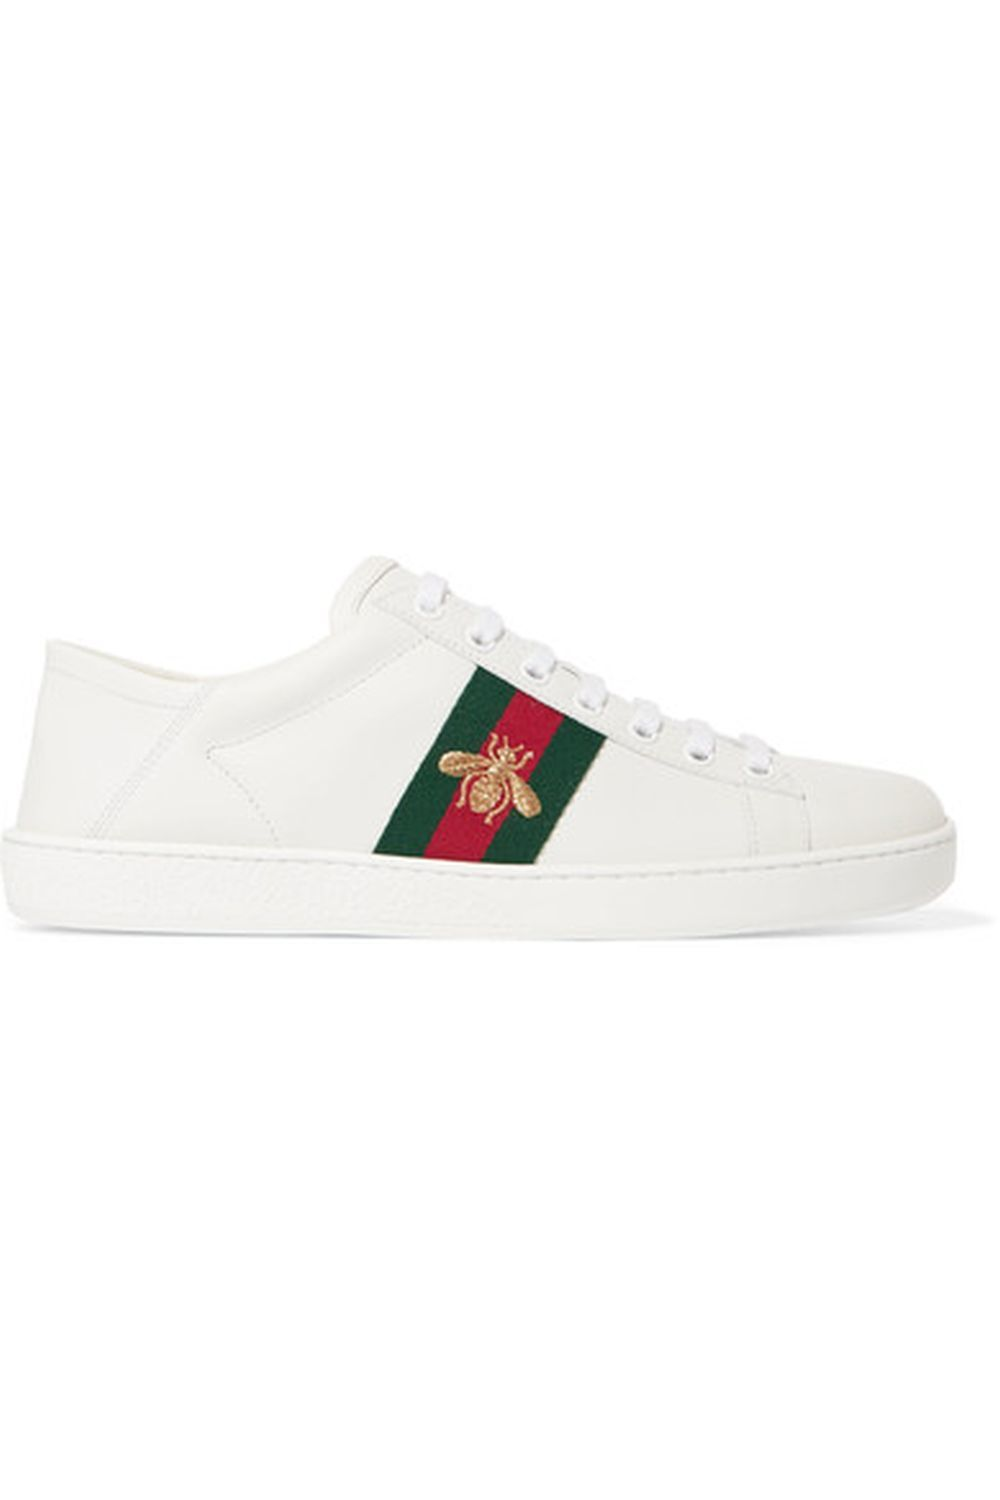 Sneakers Gucci (485 euros)